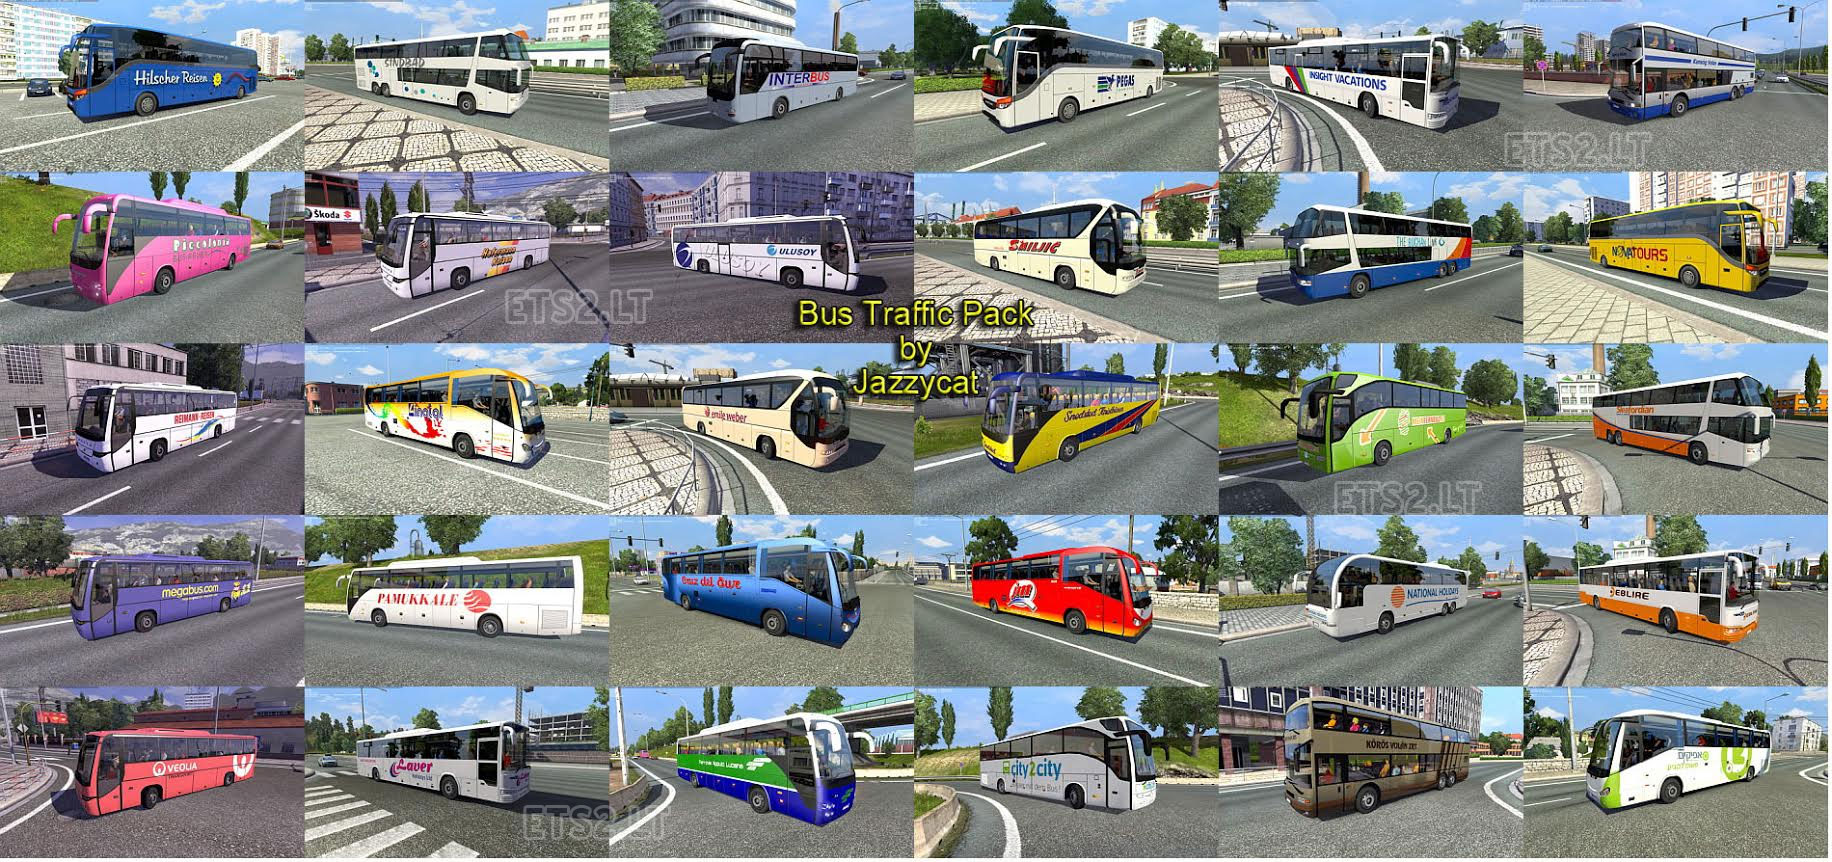 Bus traffic pack by Jazzycat v1 1 1 | ETS 2 mods